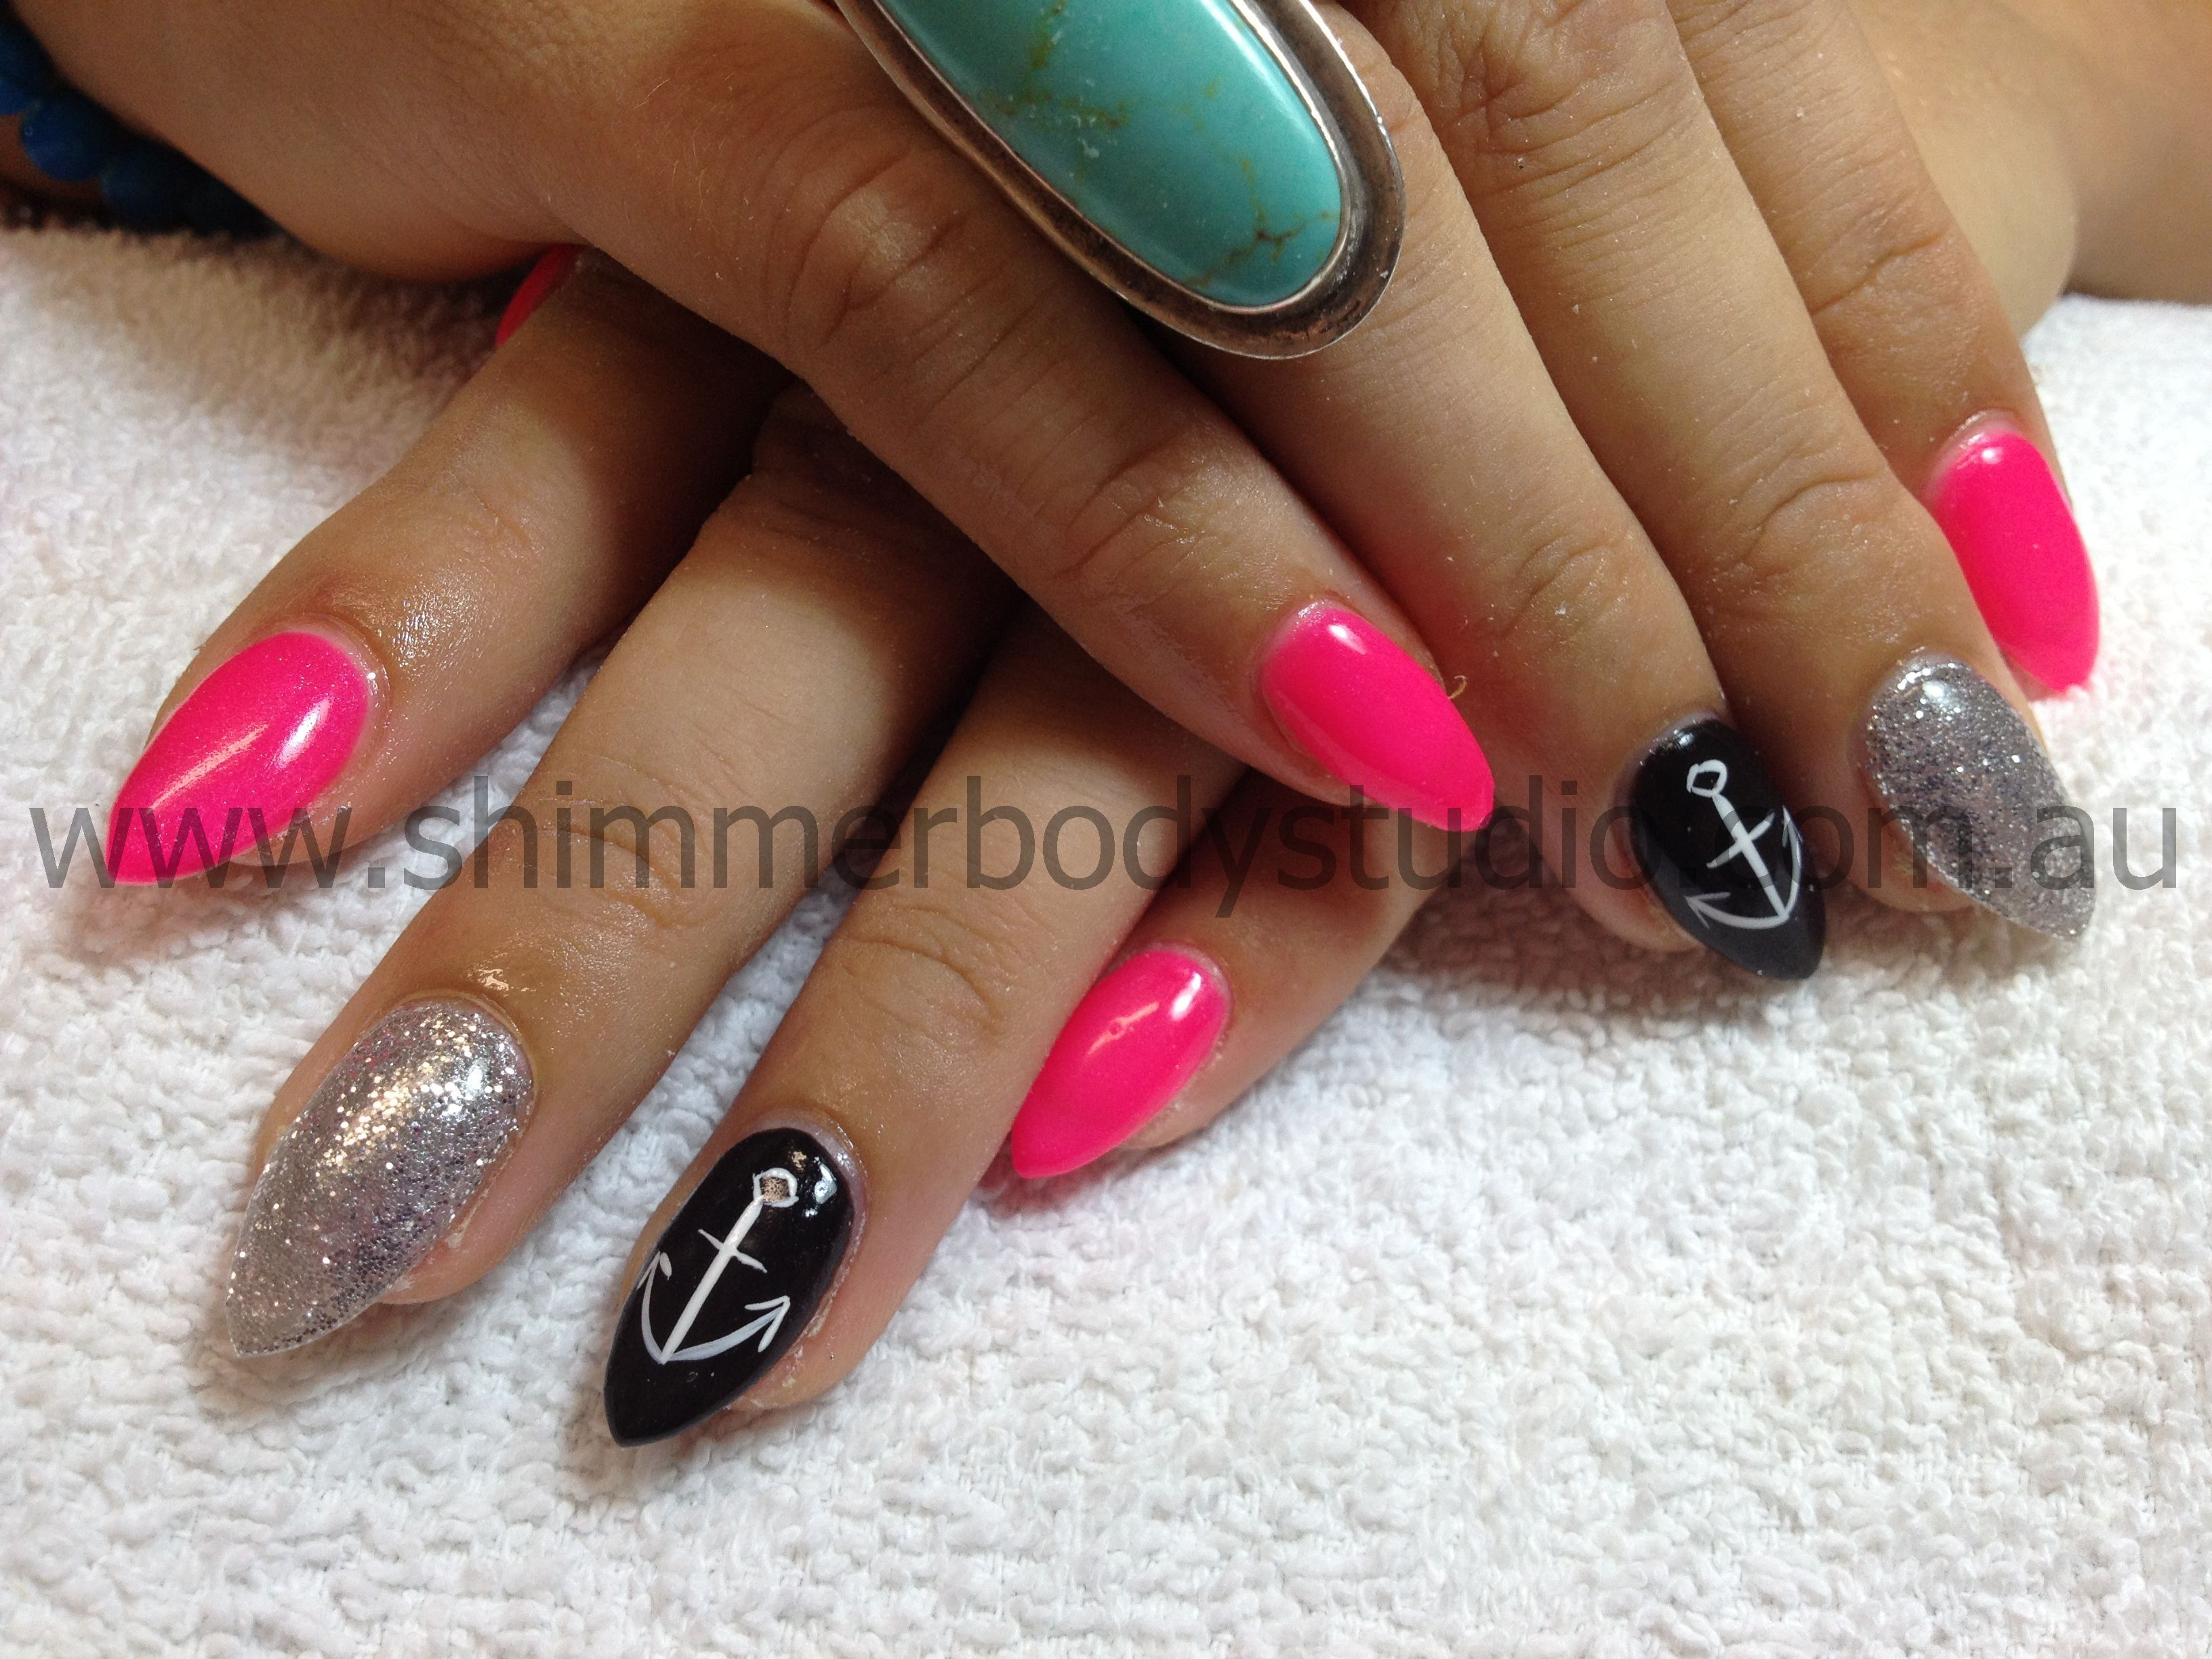 Gel Nails, Pointed Stiletto nails, Pink, Black, Silver ...